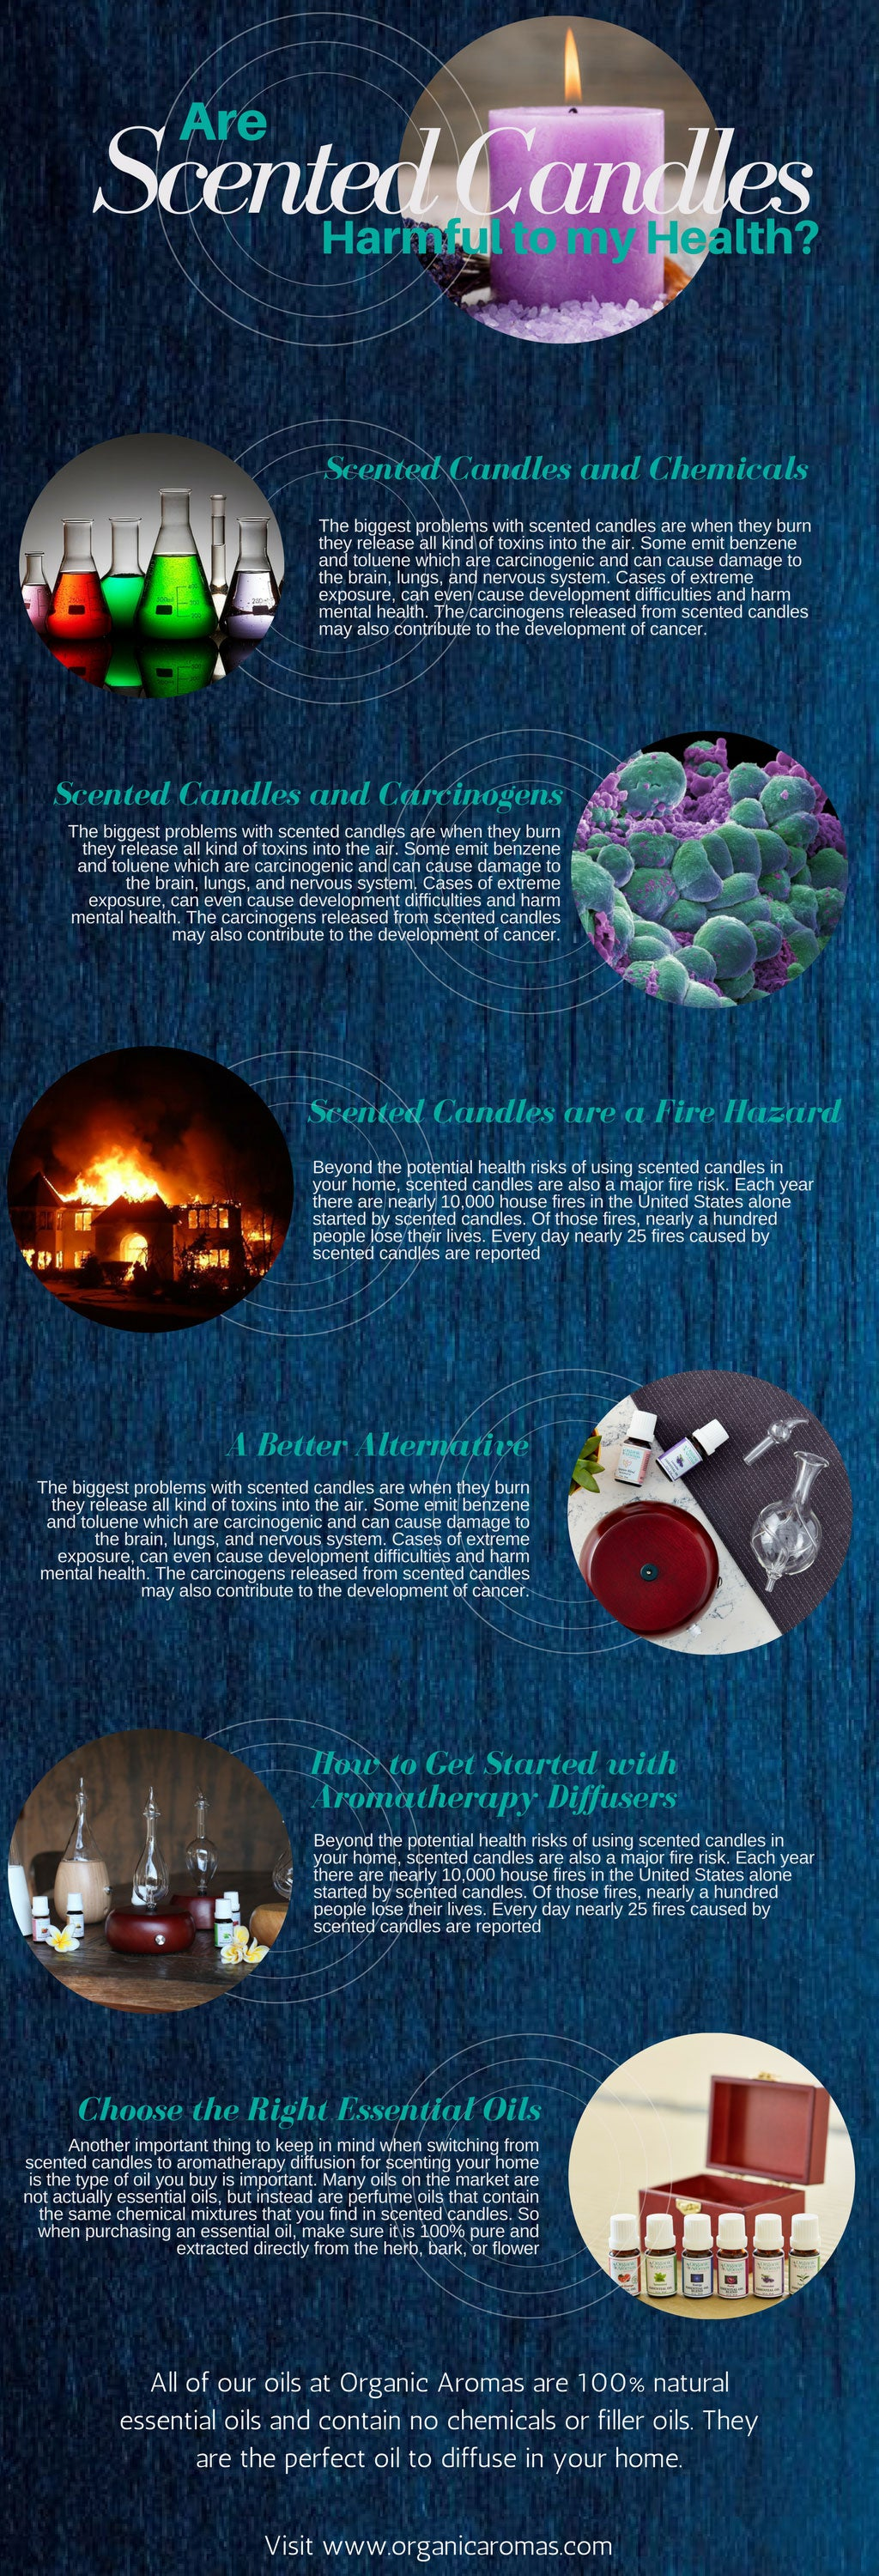 Are scented candles harmful for my health info-graphic